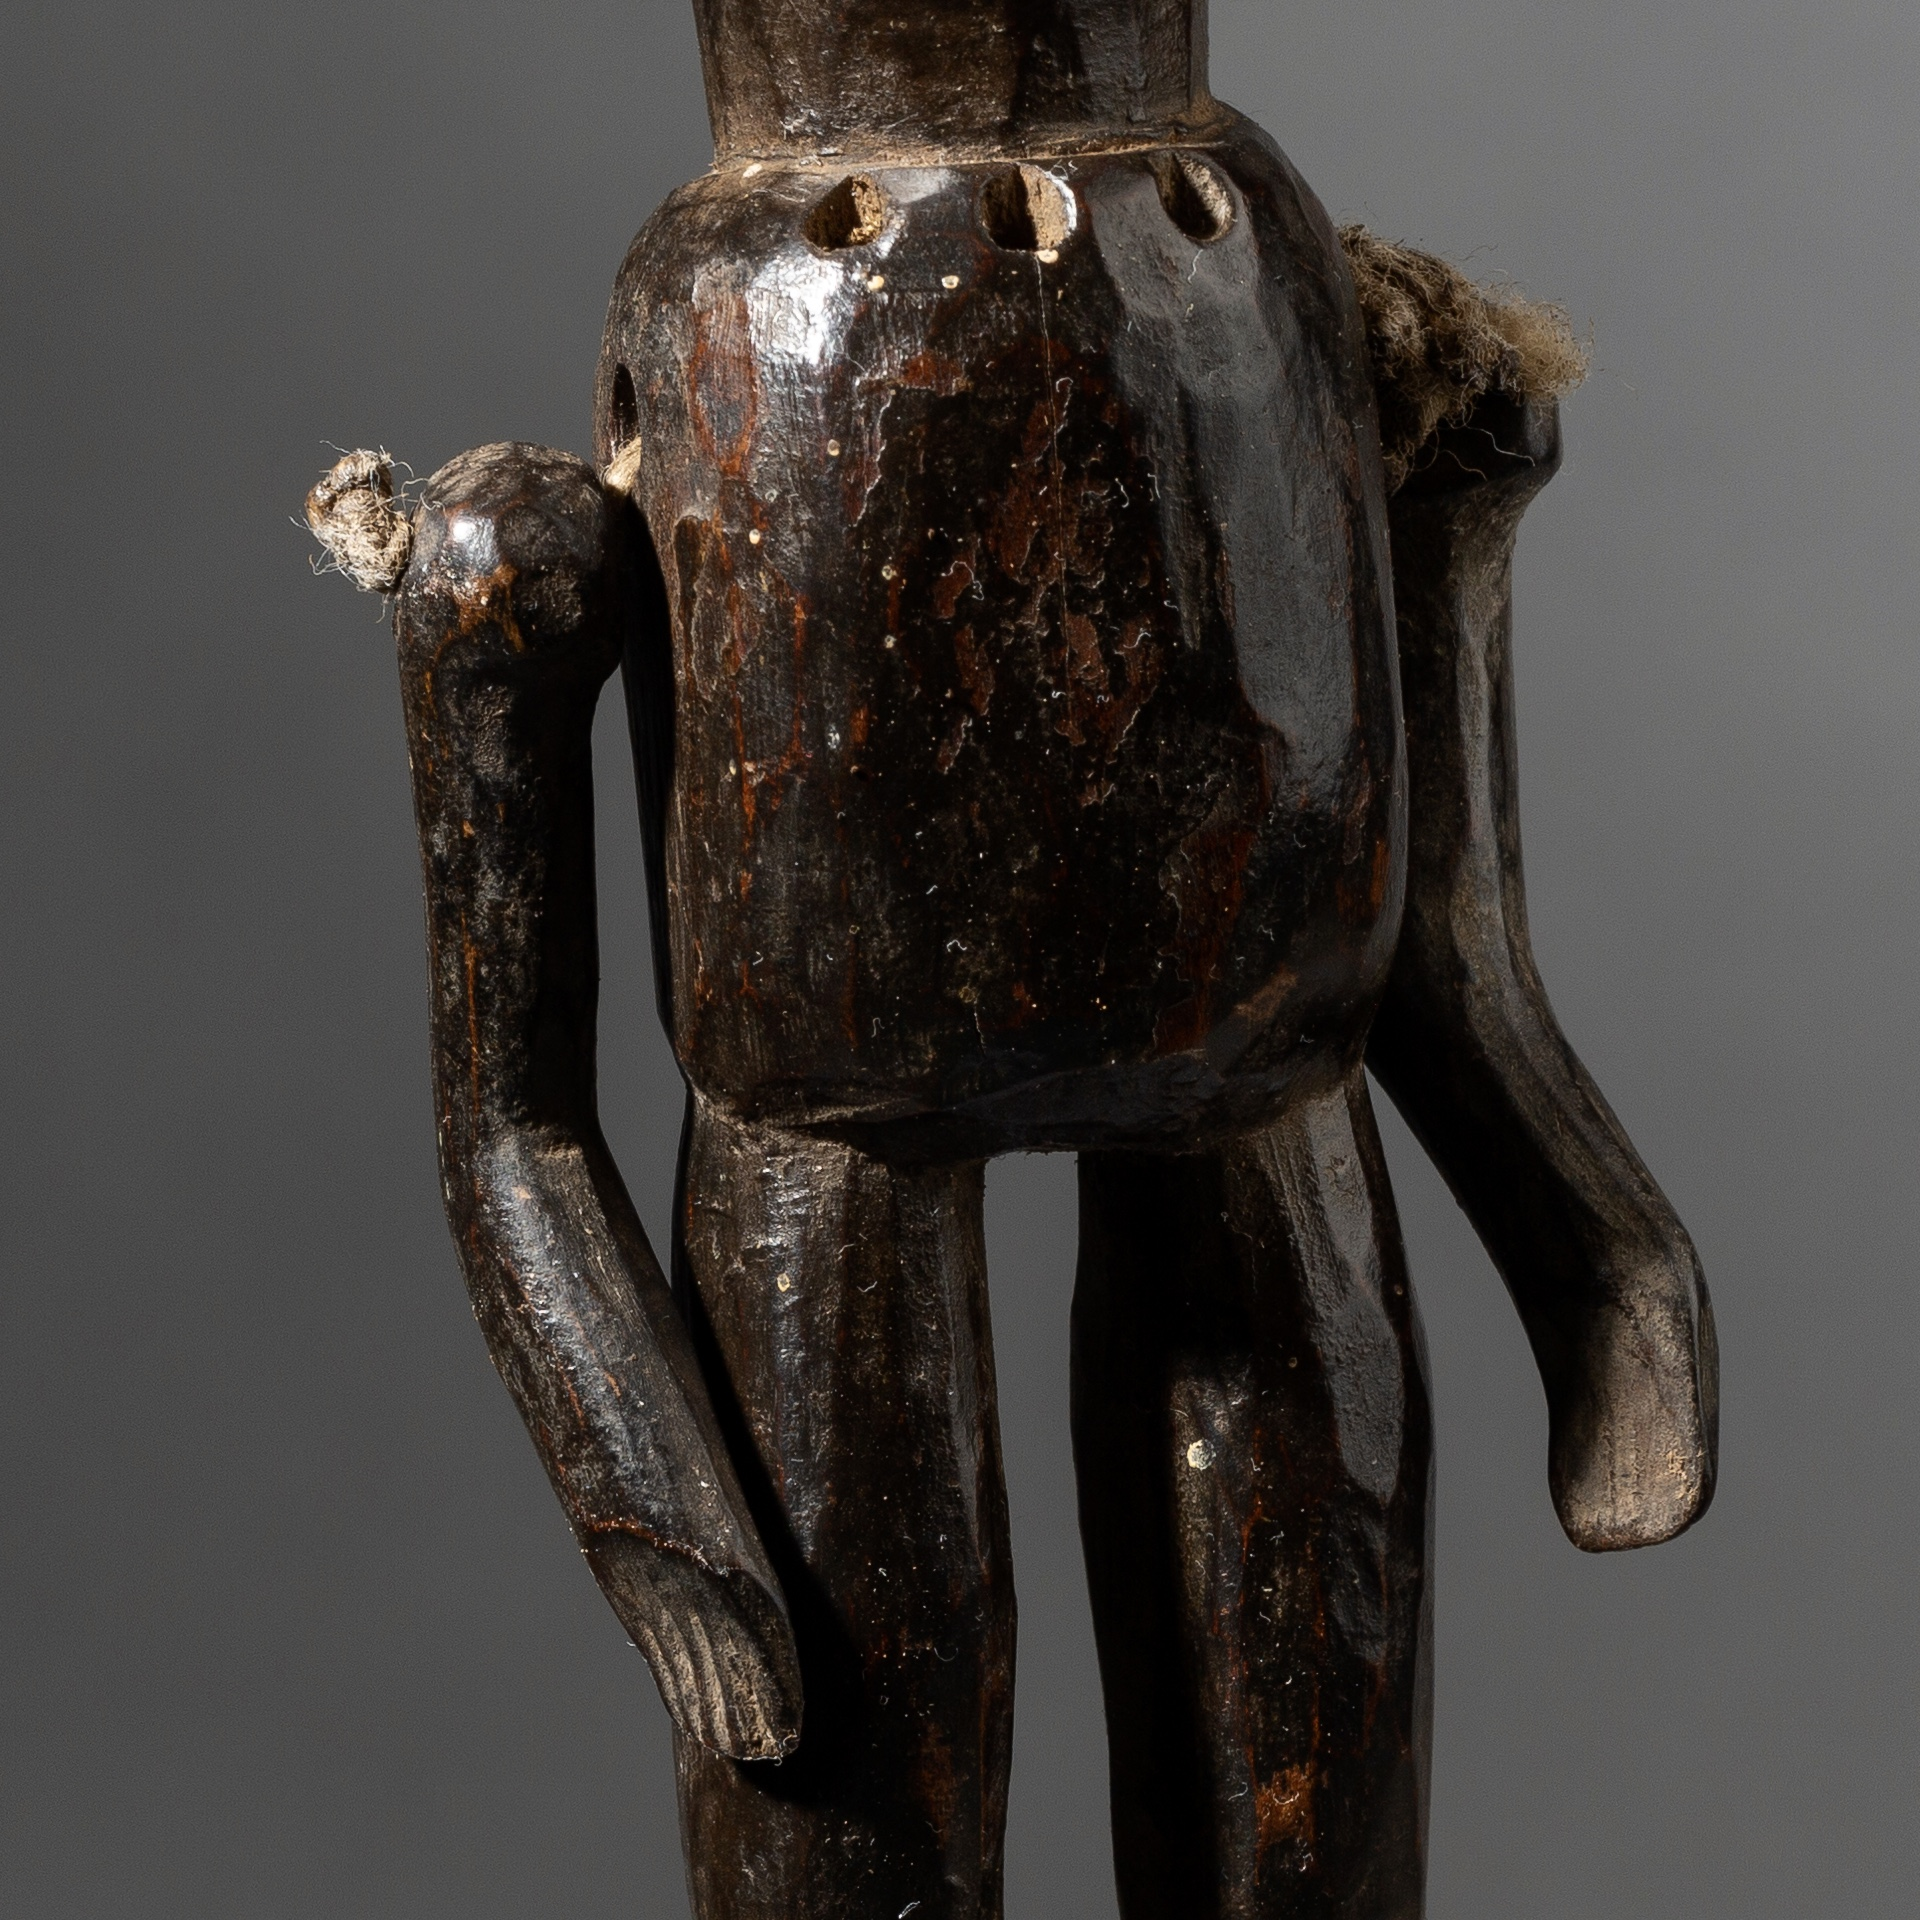 A MARIONETTE STATUE WITH ARTICULATED ARMS, NYAMWESI TRIBE OF TANZANIA ( No 3492 )